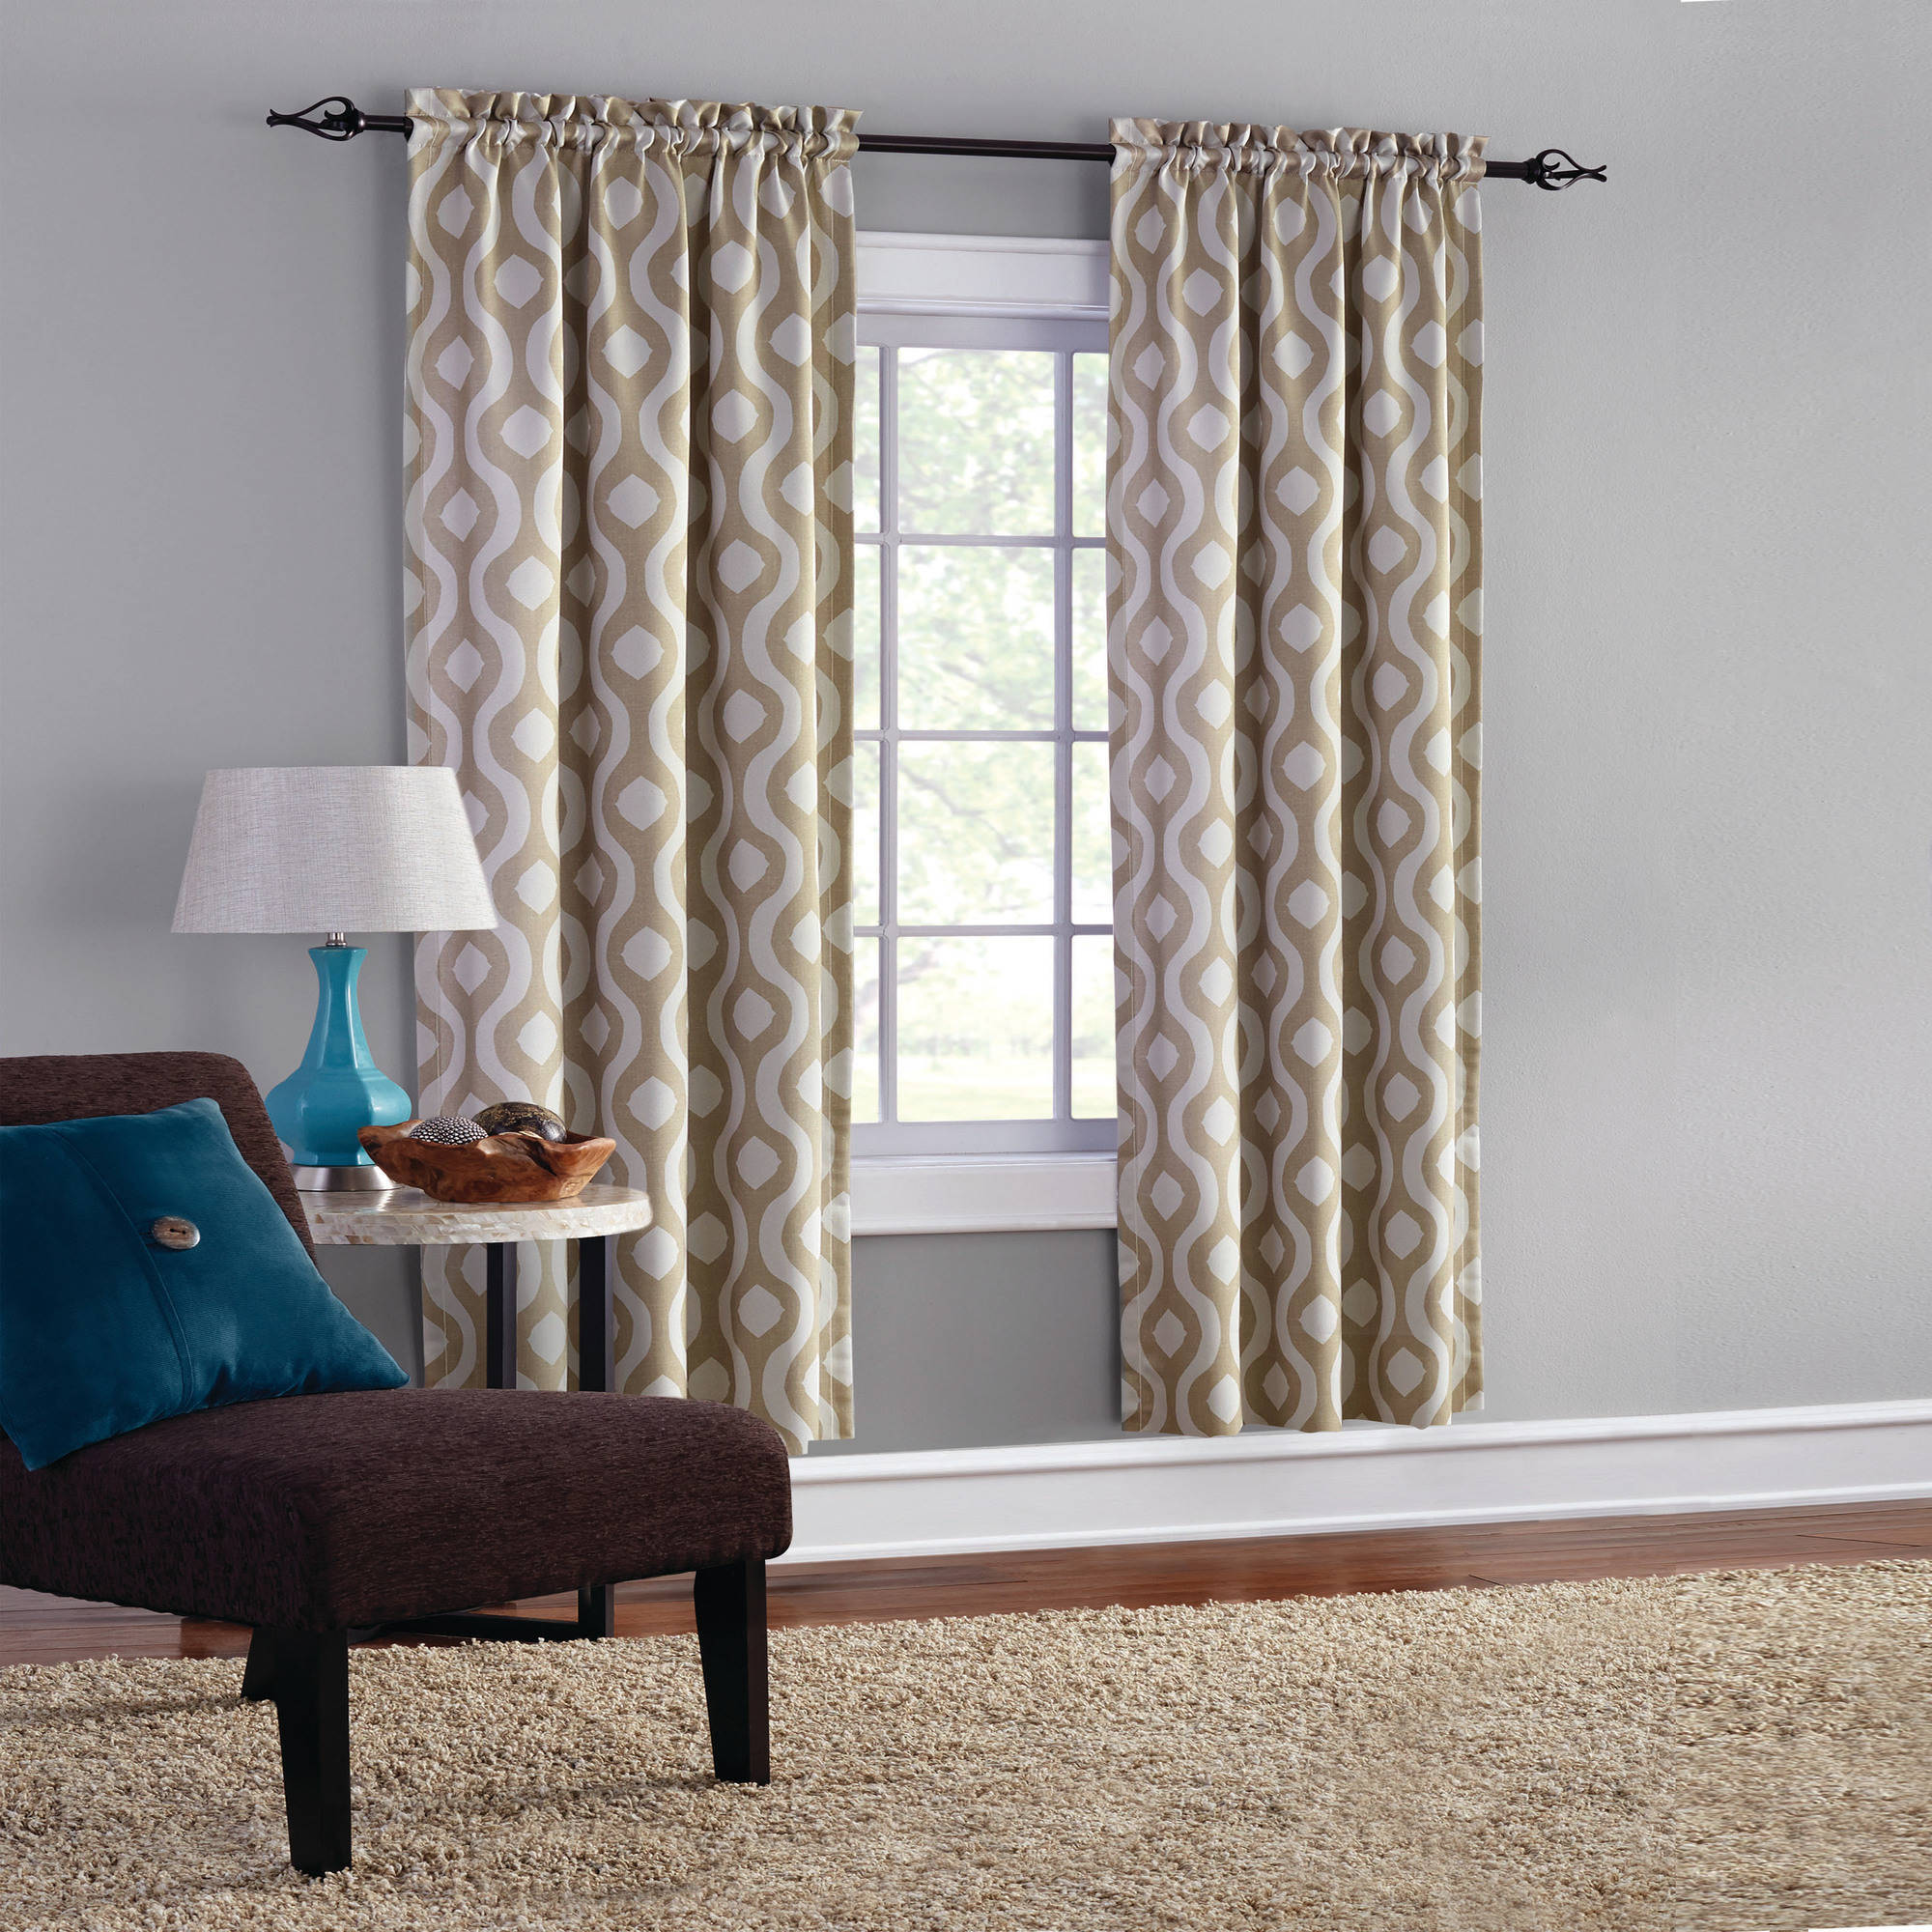 Mainstays Blackout Print Woven Window Curtains, Set of 2 by Keeco LLC